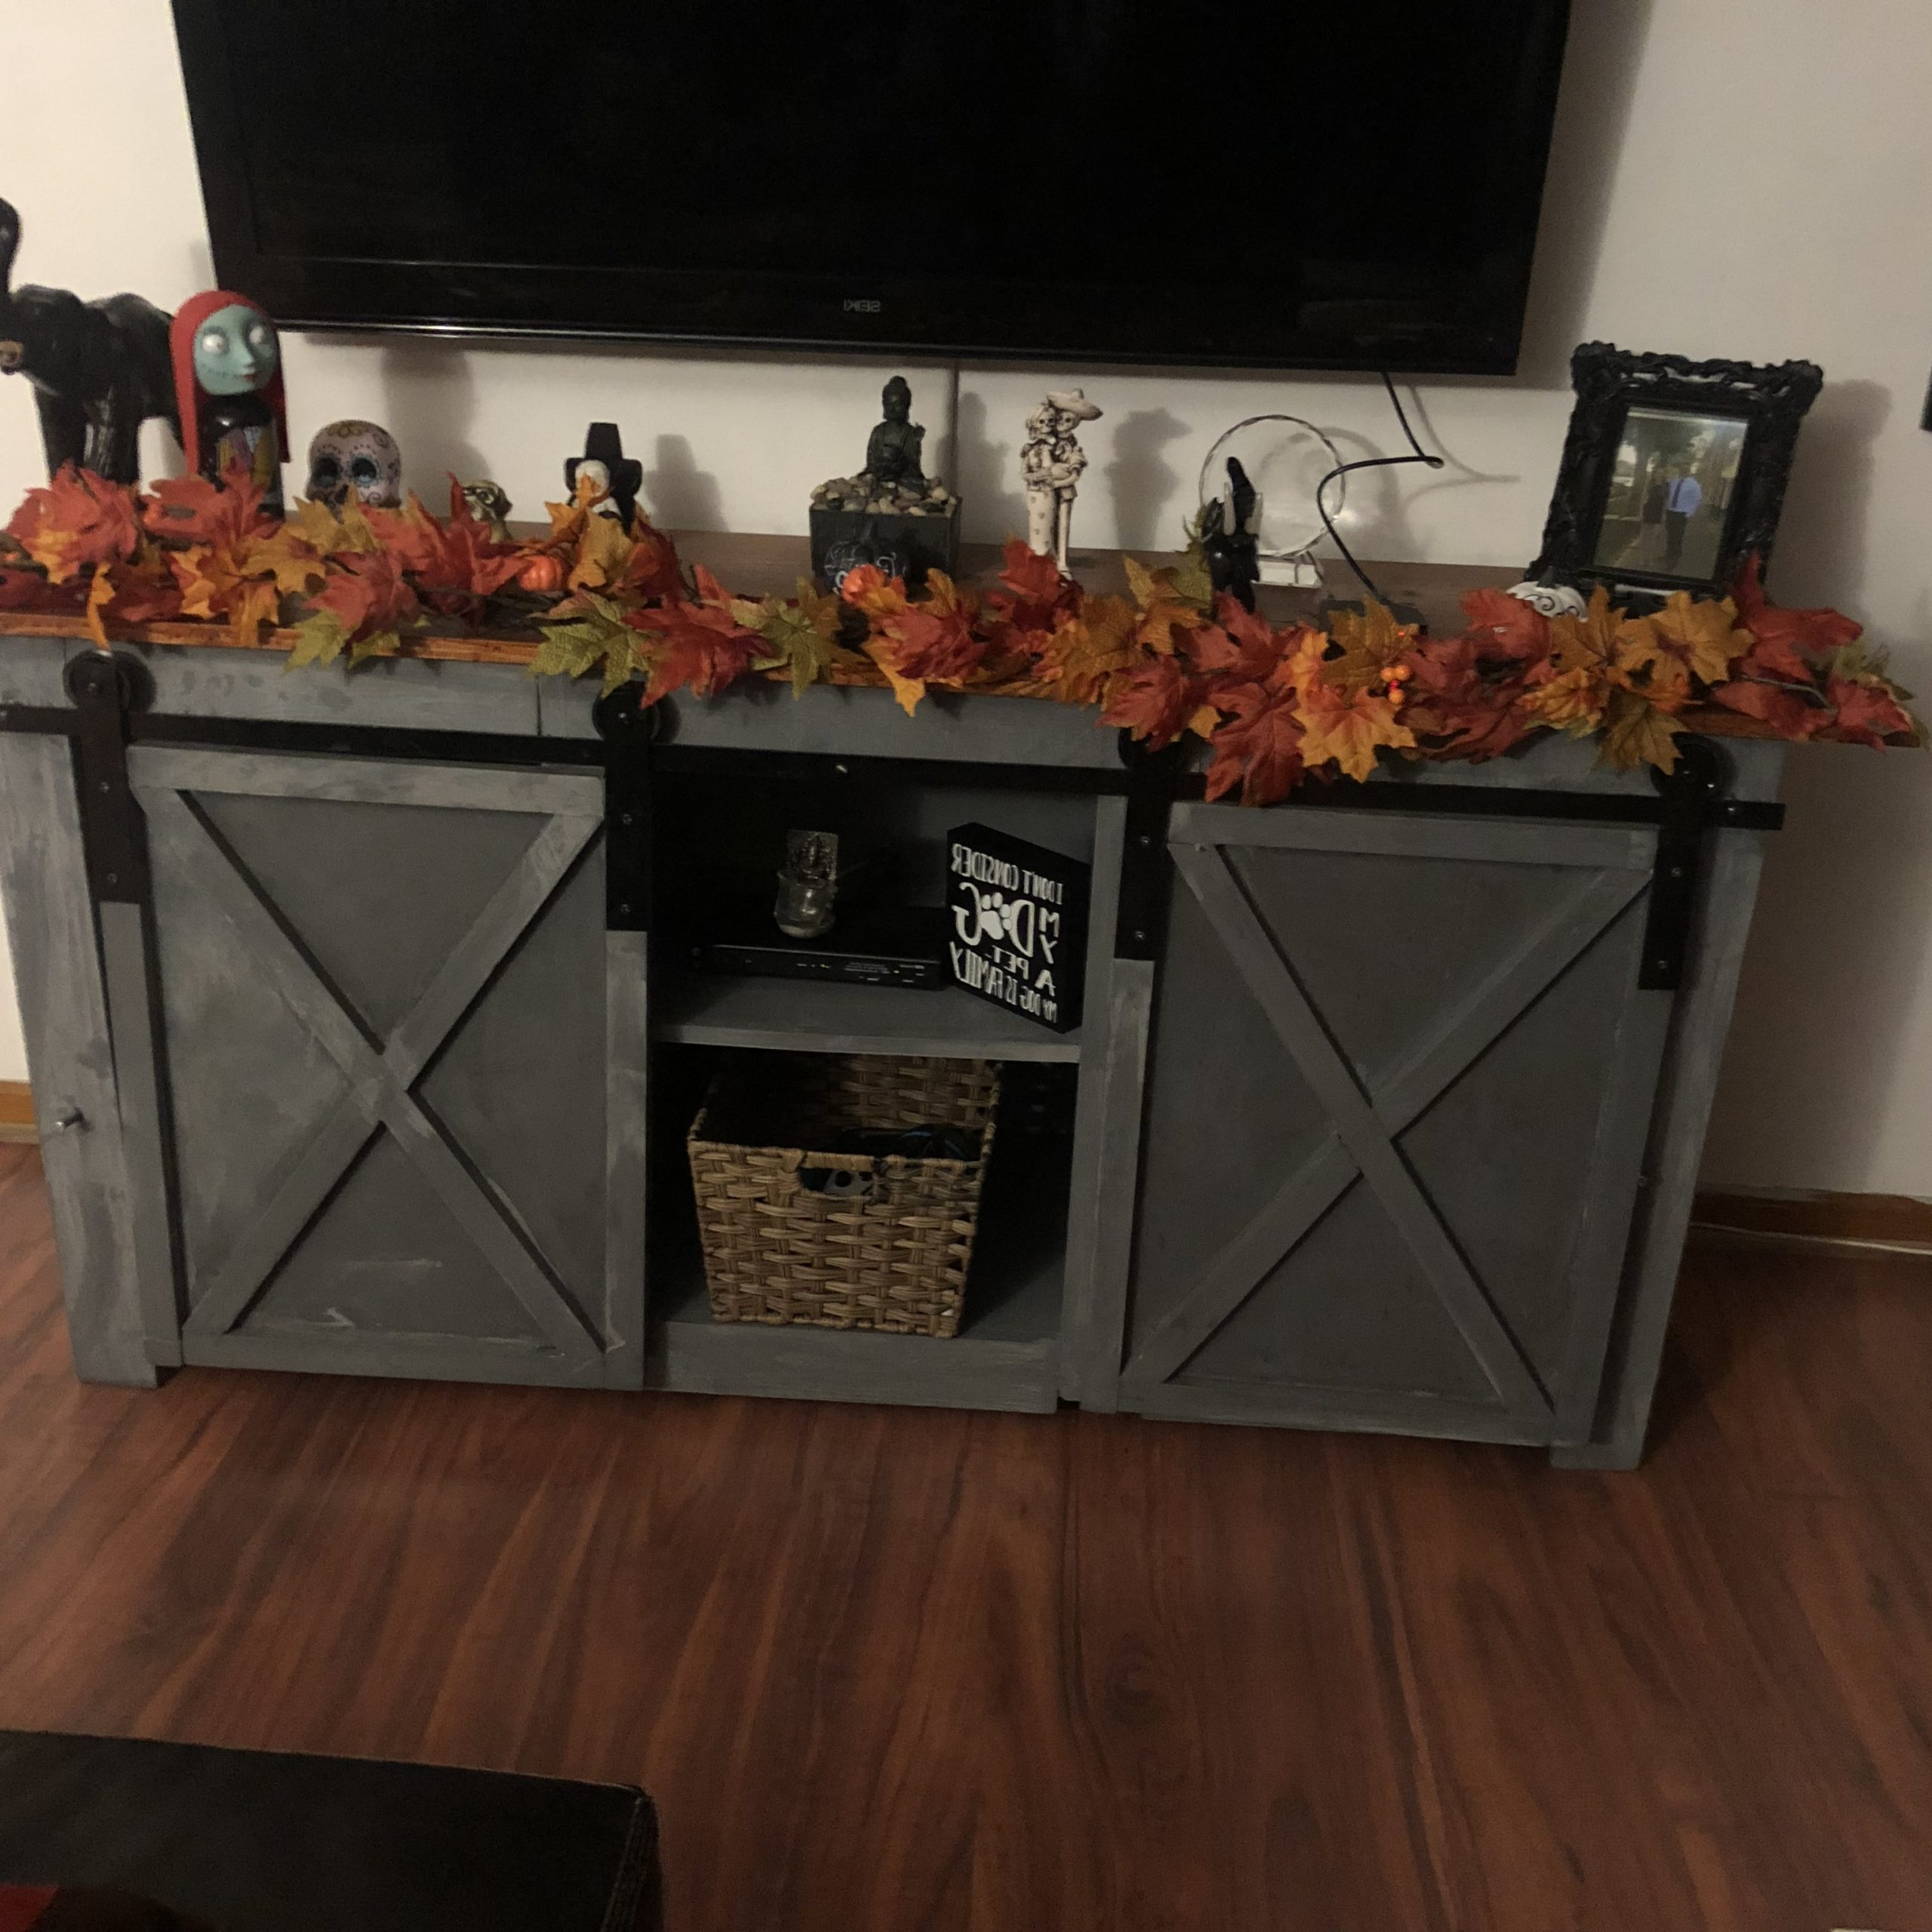 Well Liked Tv Stand – Ryobi Nation Projects With Regard To Farmhouse Woven Paths Glass Door Tv Stands (View 8 of 10)